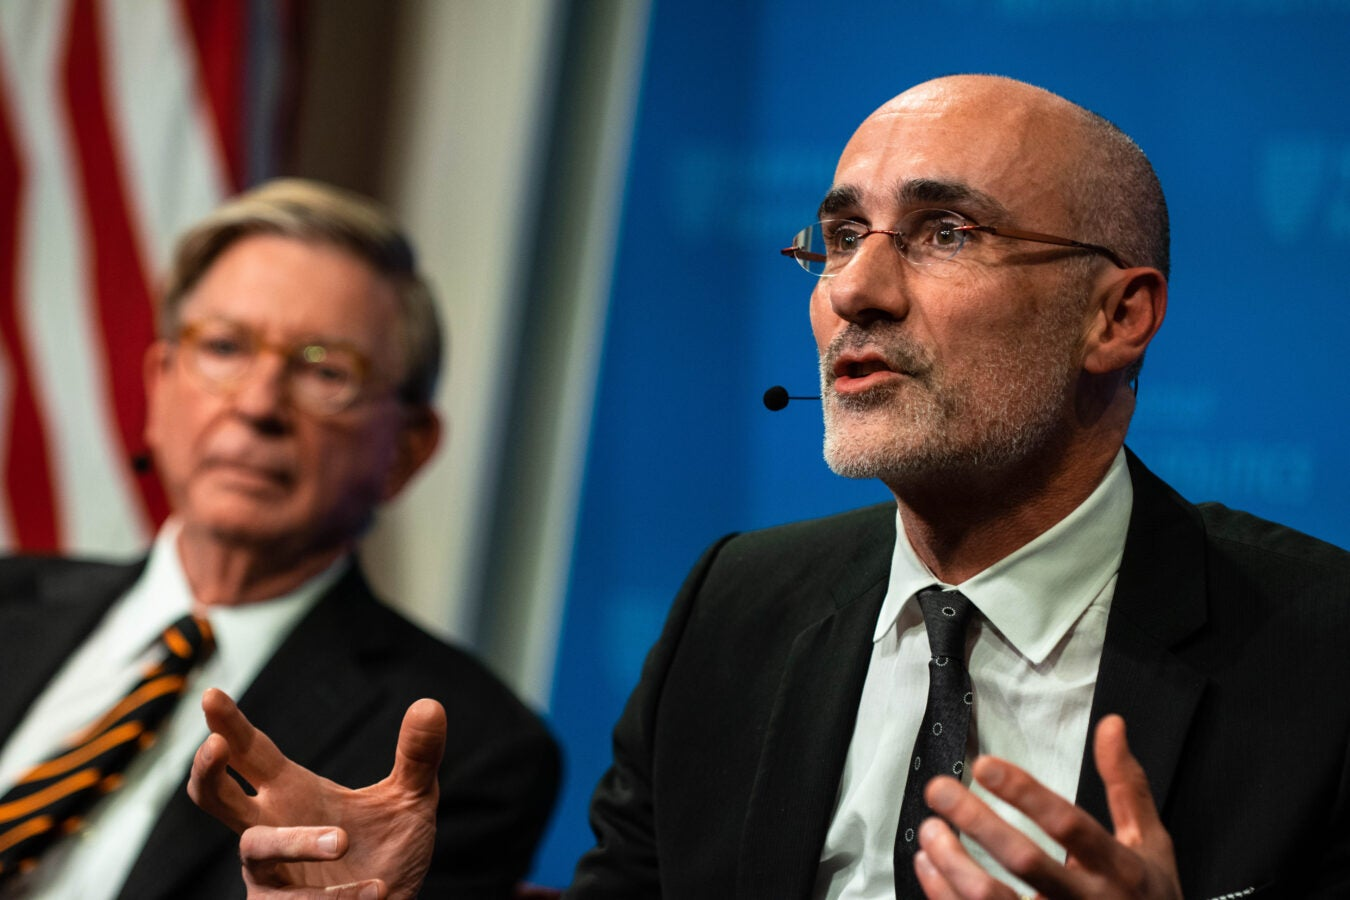 Harvard Kennedy School Professor Arthur Brooks with George Will in the background.